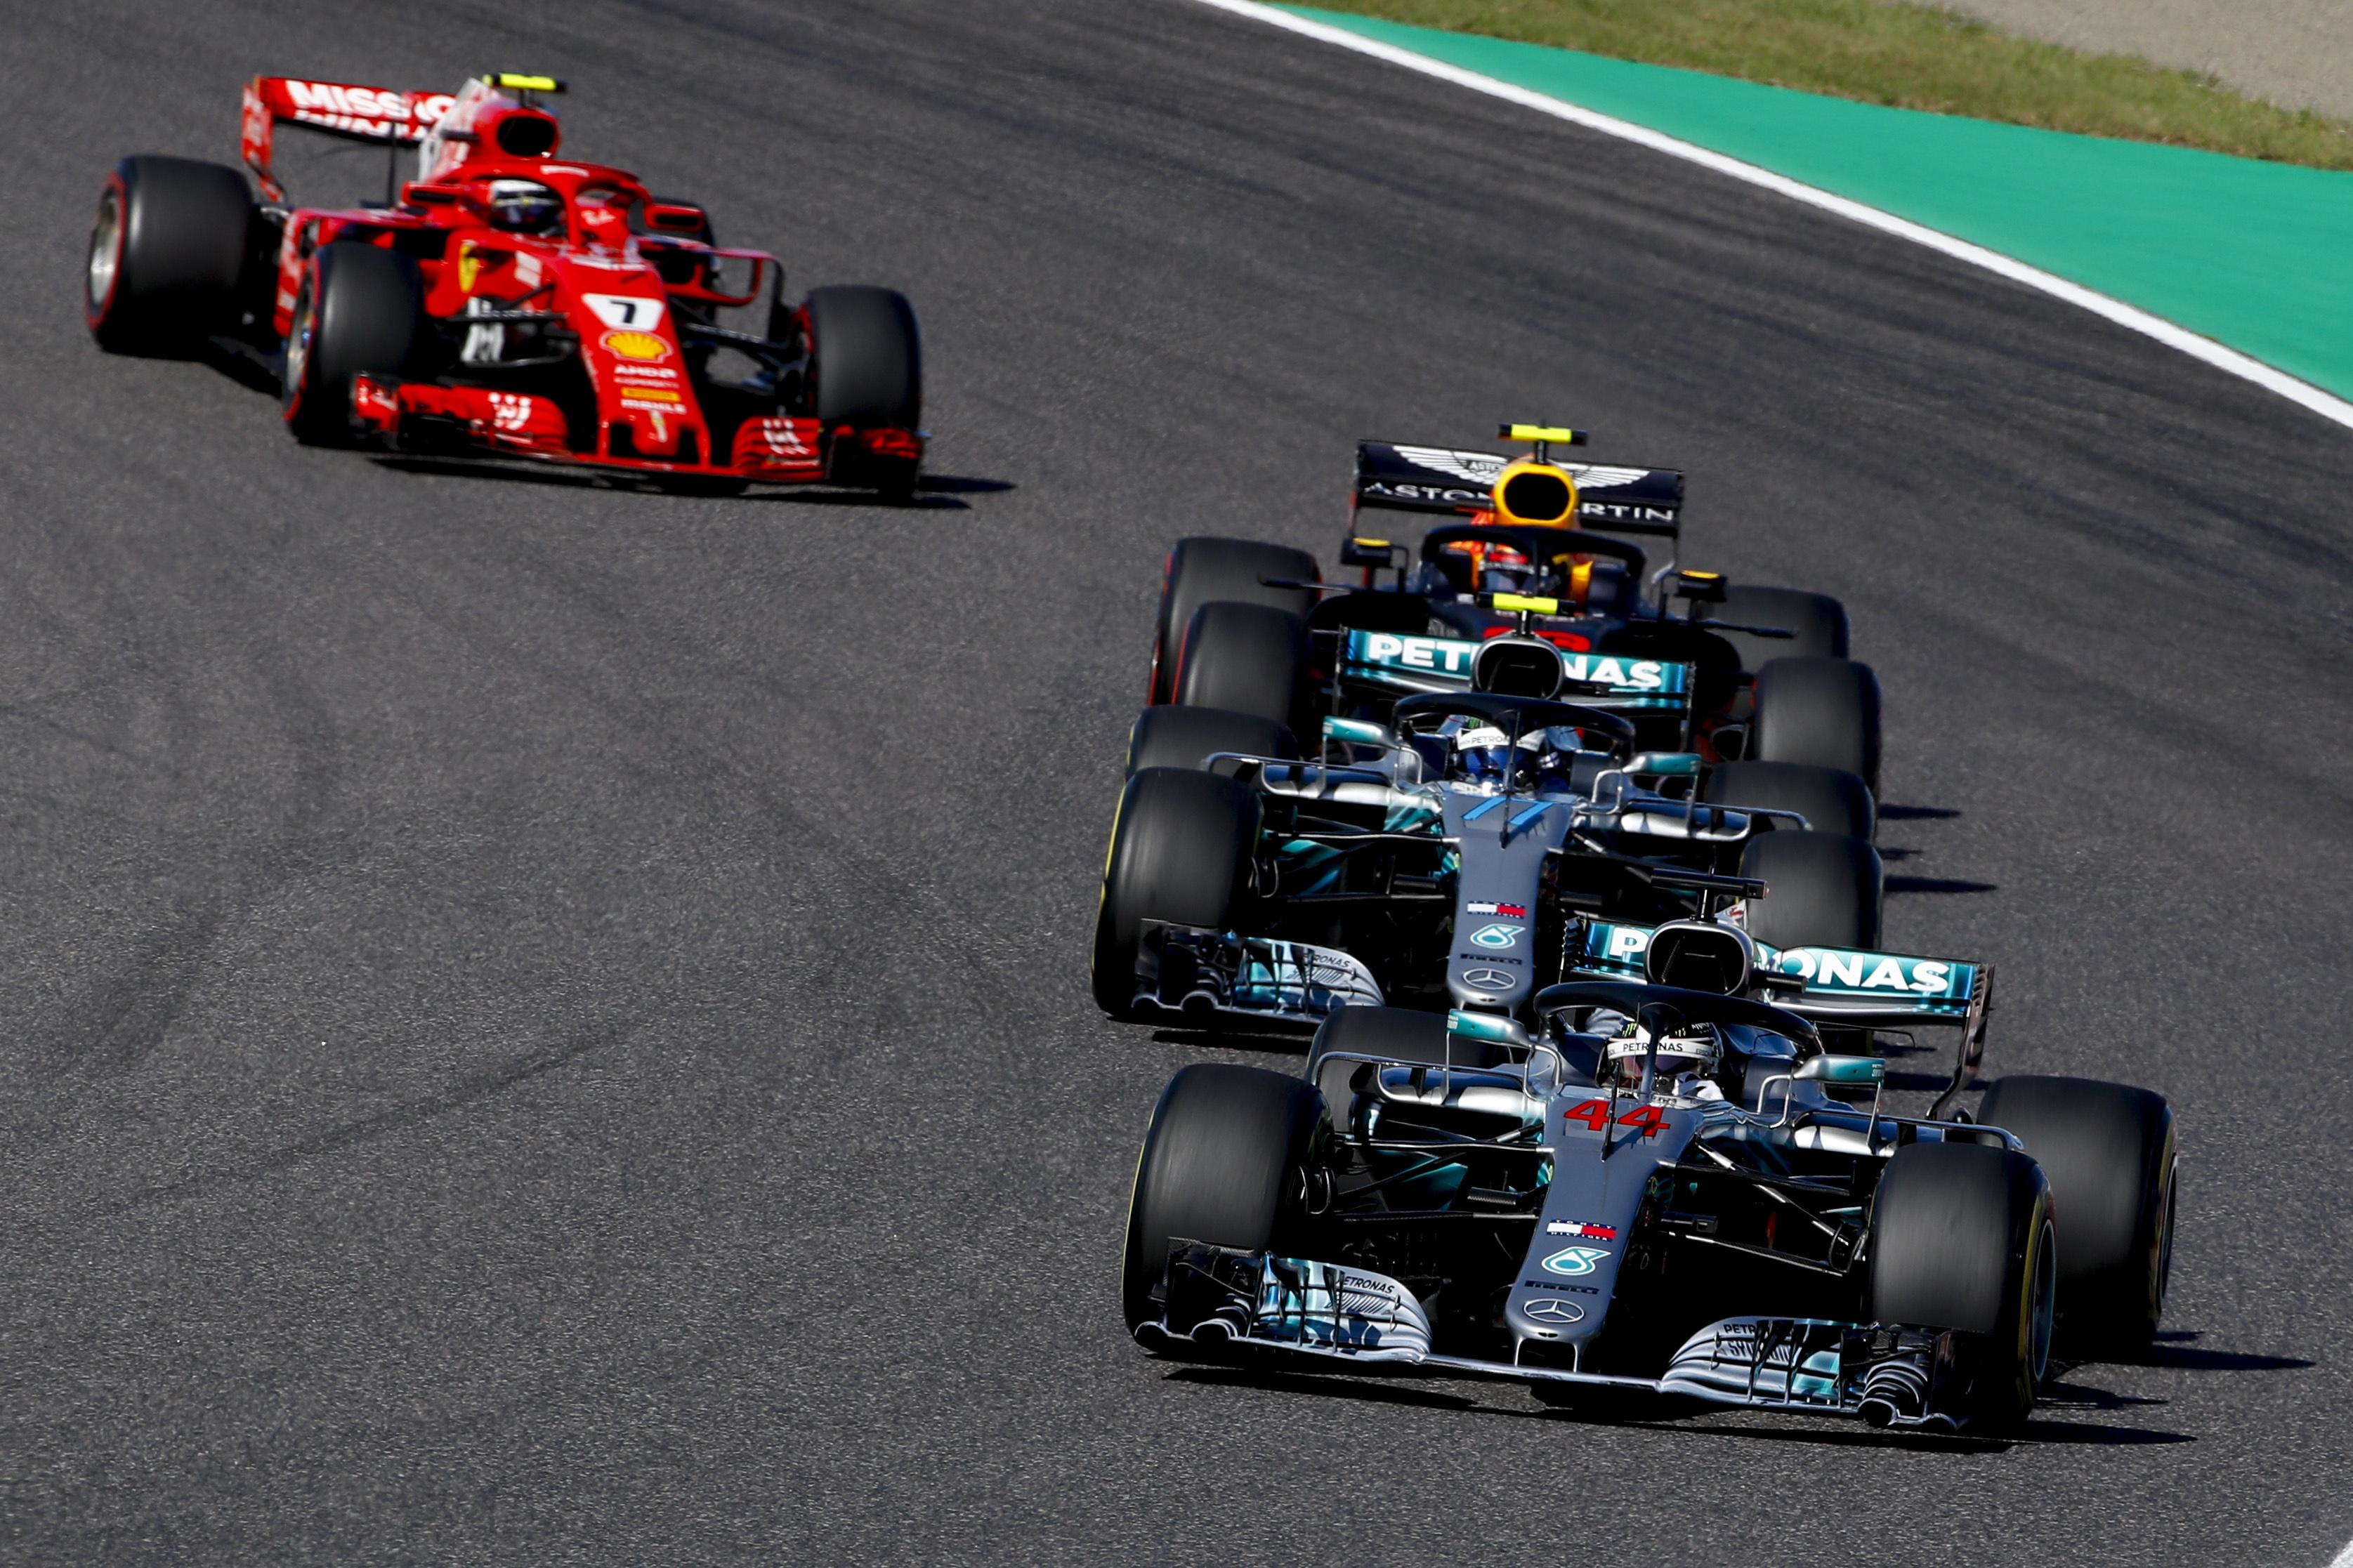 Hamilton was dominant throughout the race to make it four wins in the last five Japan GP